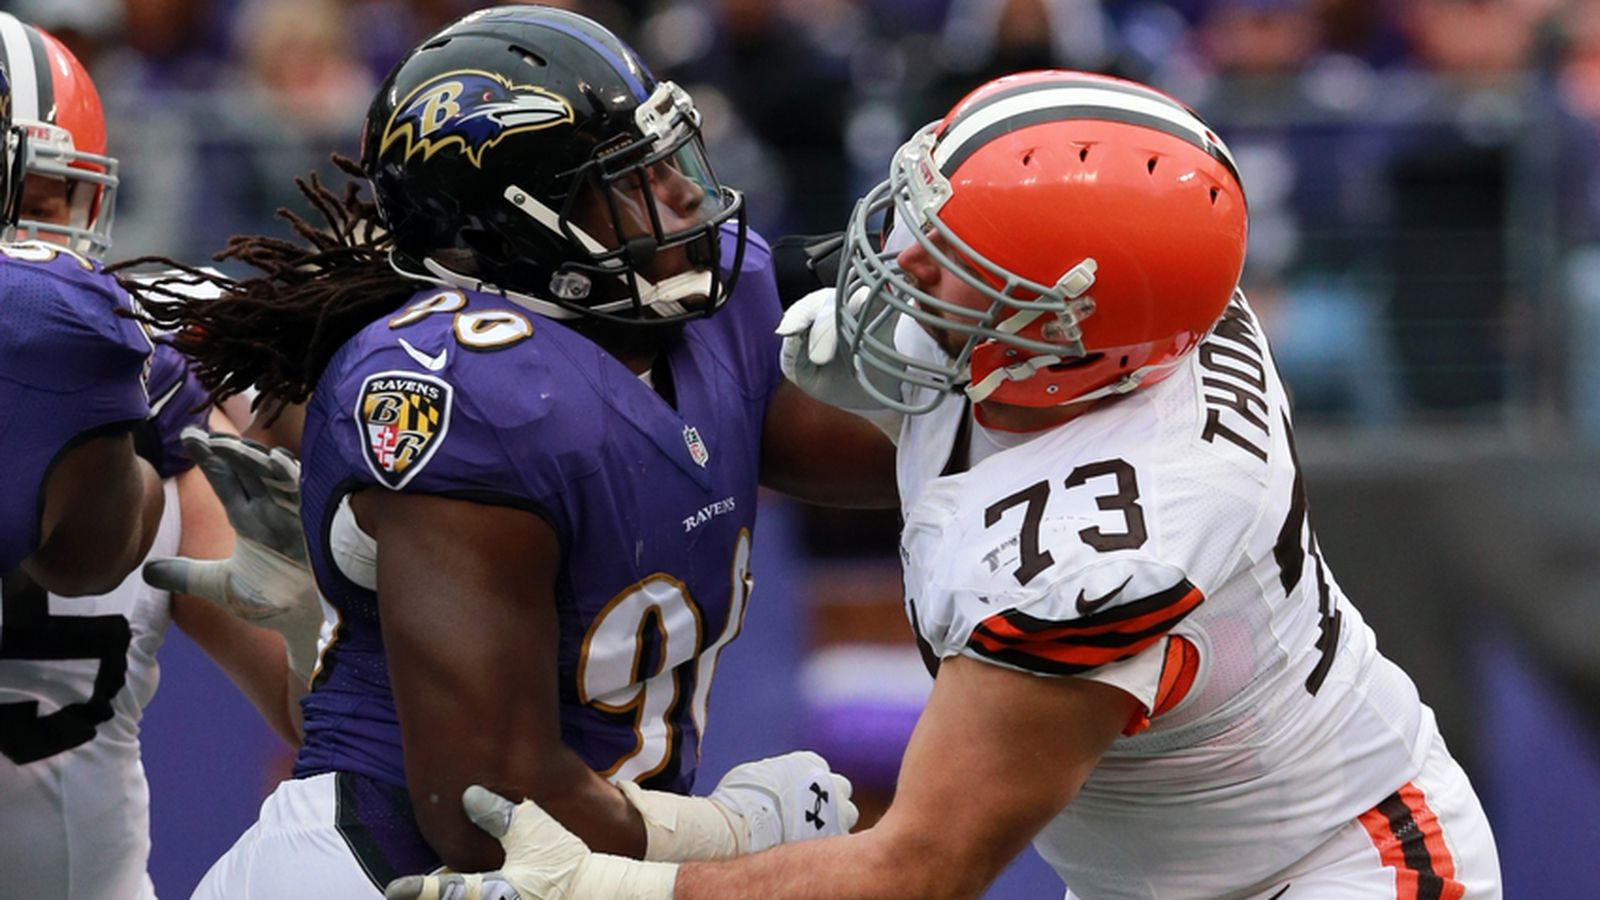 Pernell-mcphee-joe-thomas-nfl-cleveland-browns-baltimore-ravens-2.0.0